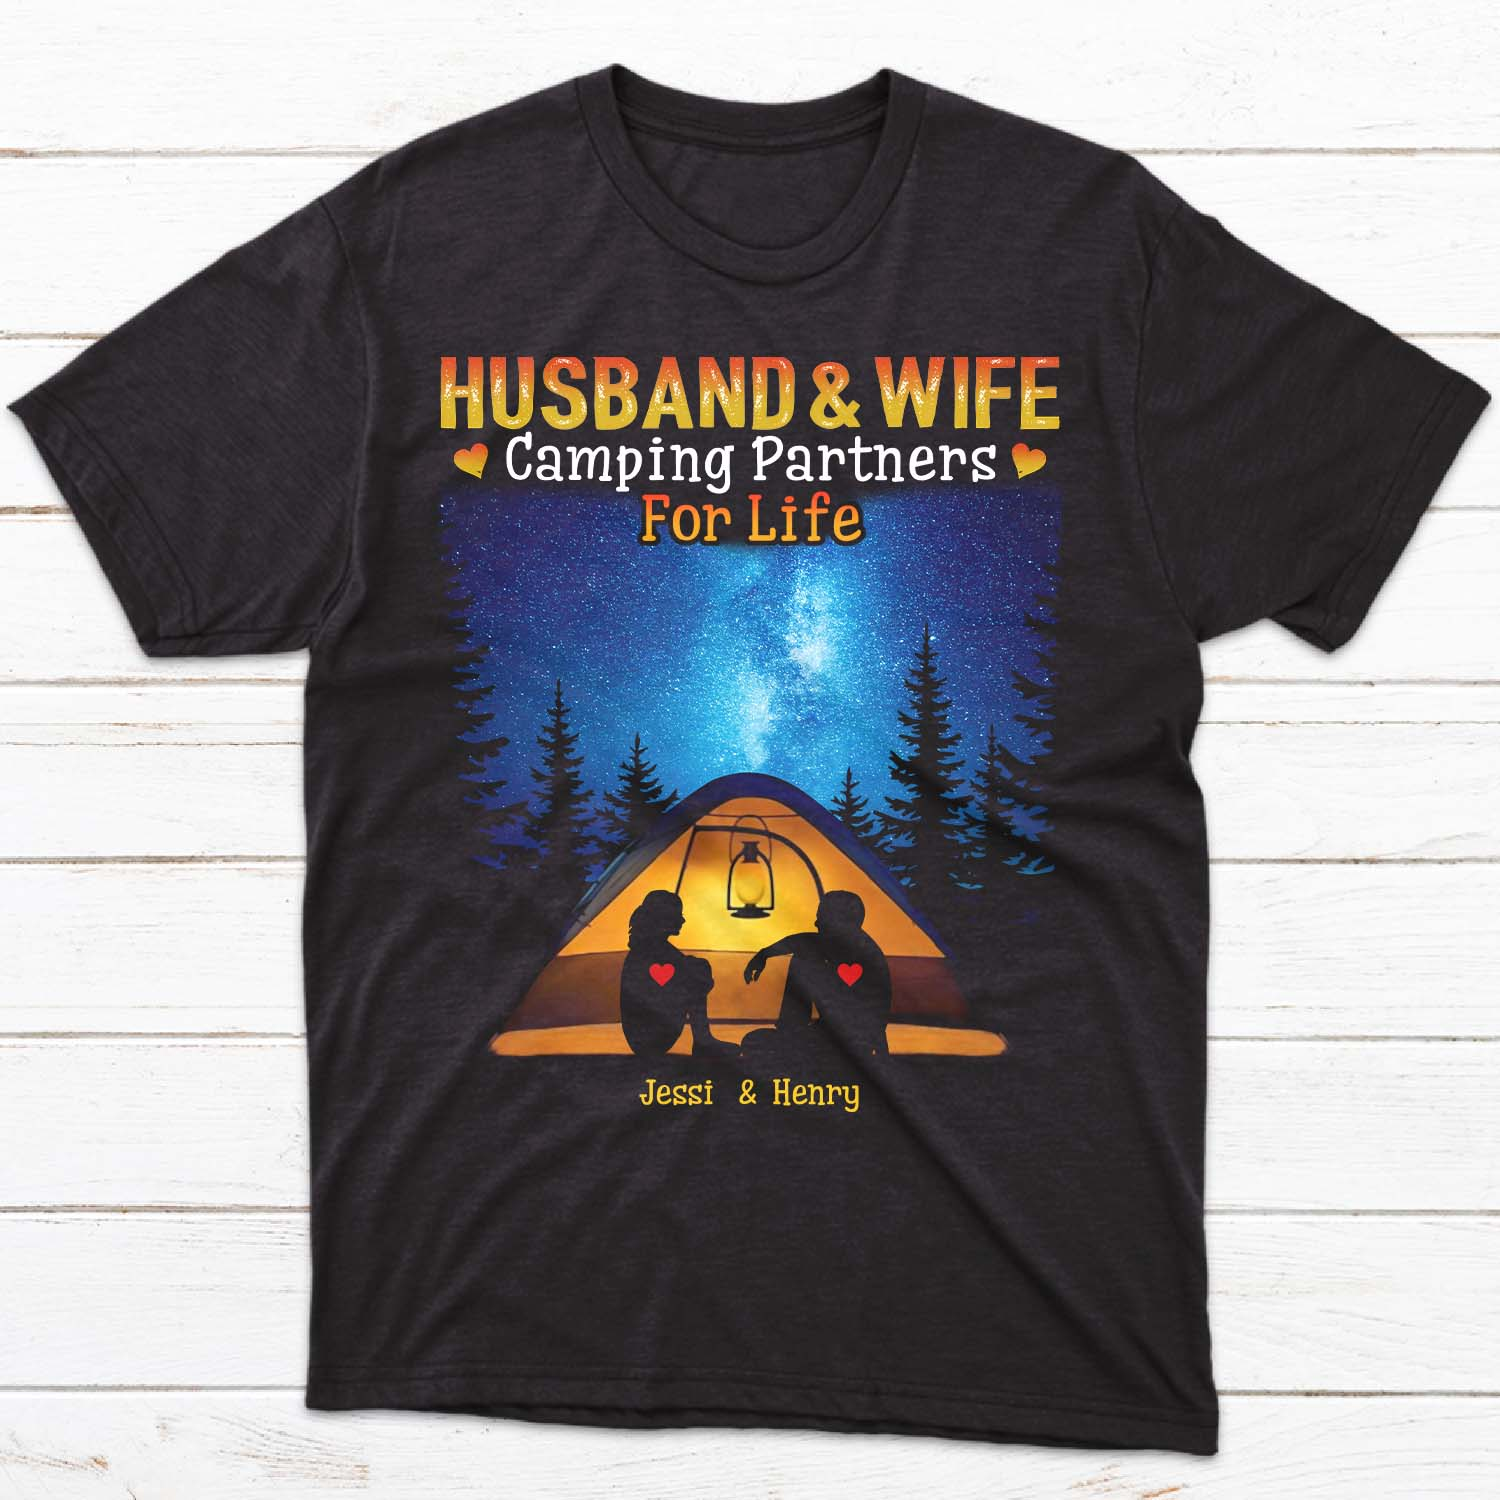 Husband & Wife Camping Partners For Life Matching T-shirt Personalized With Names With A Wide Range Of Colors and Size